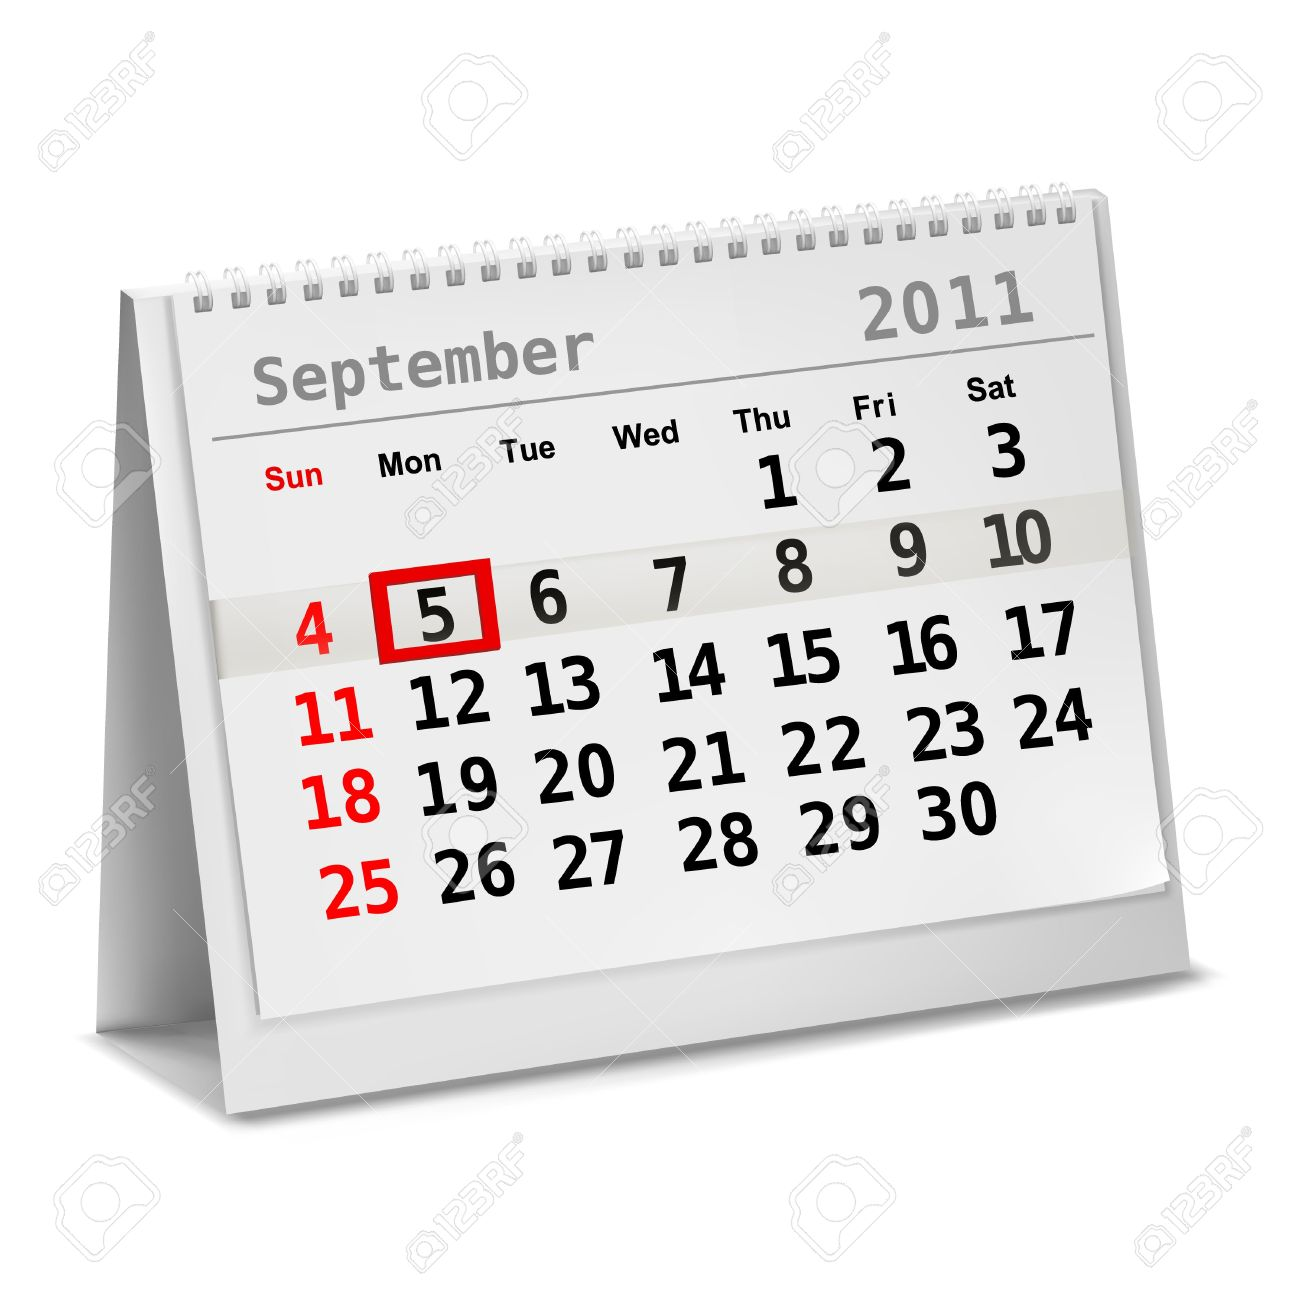 Desktop Calendar With A Marked 5th Of September, The Labor Day.